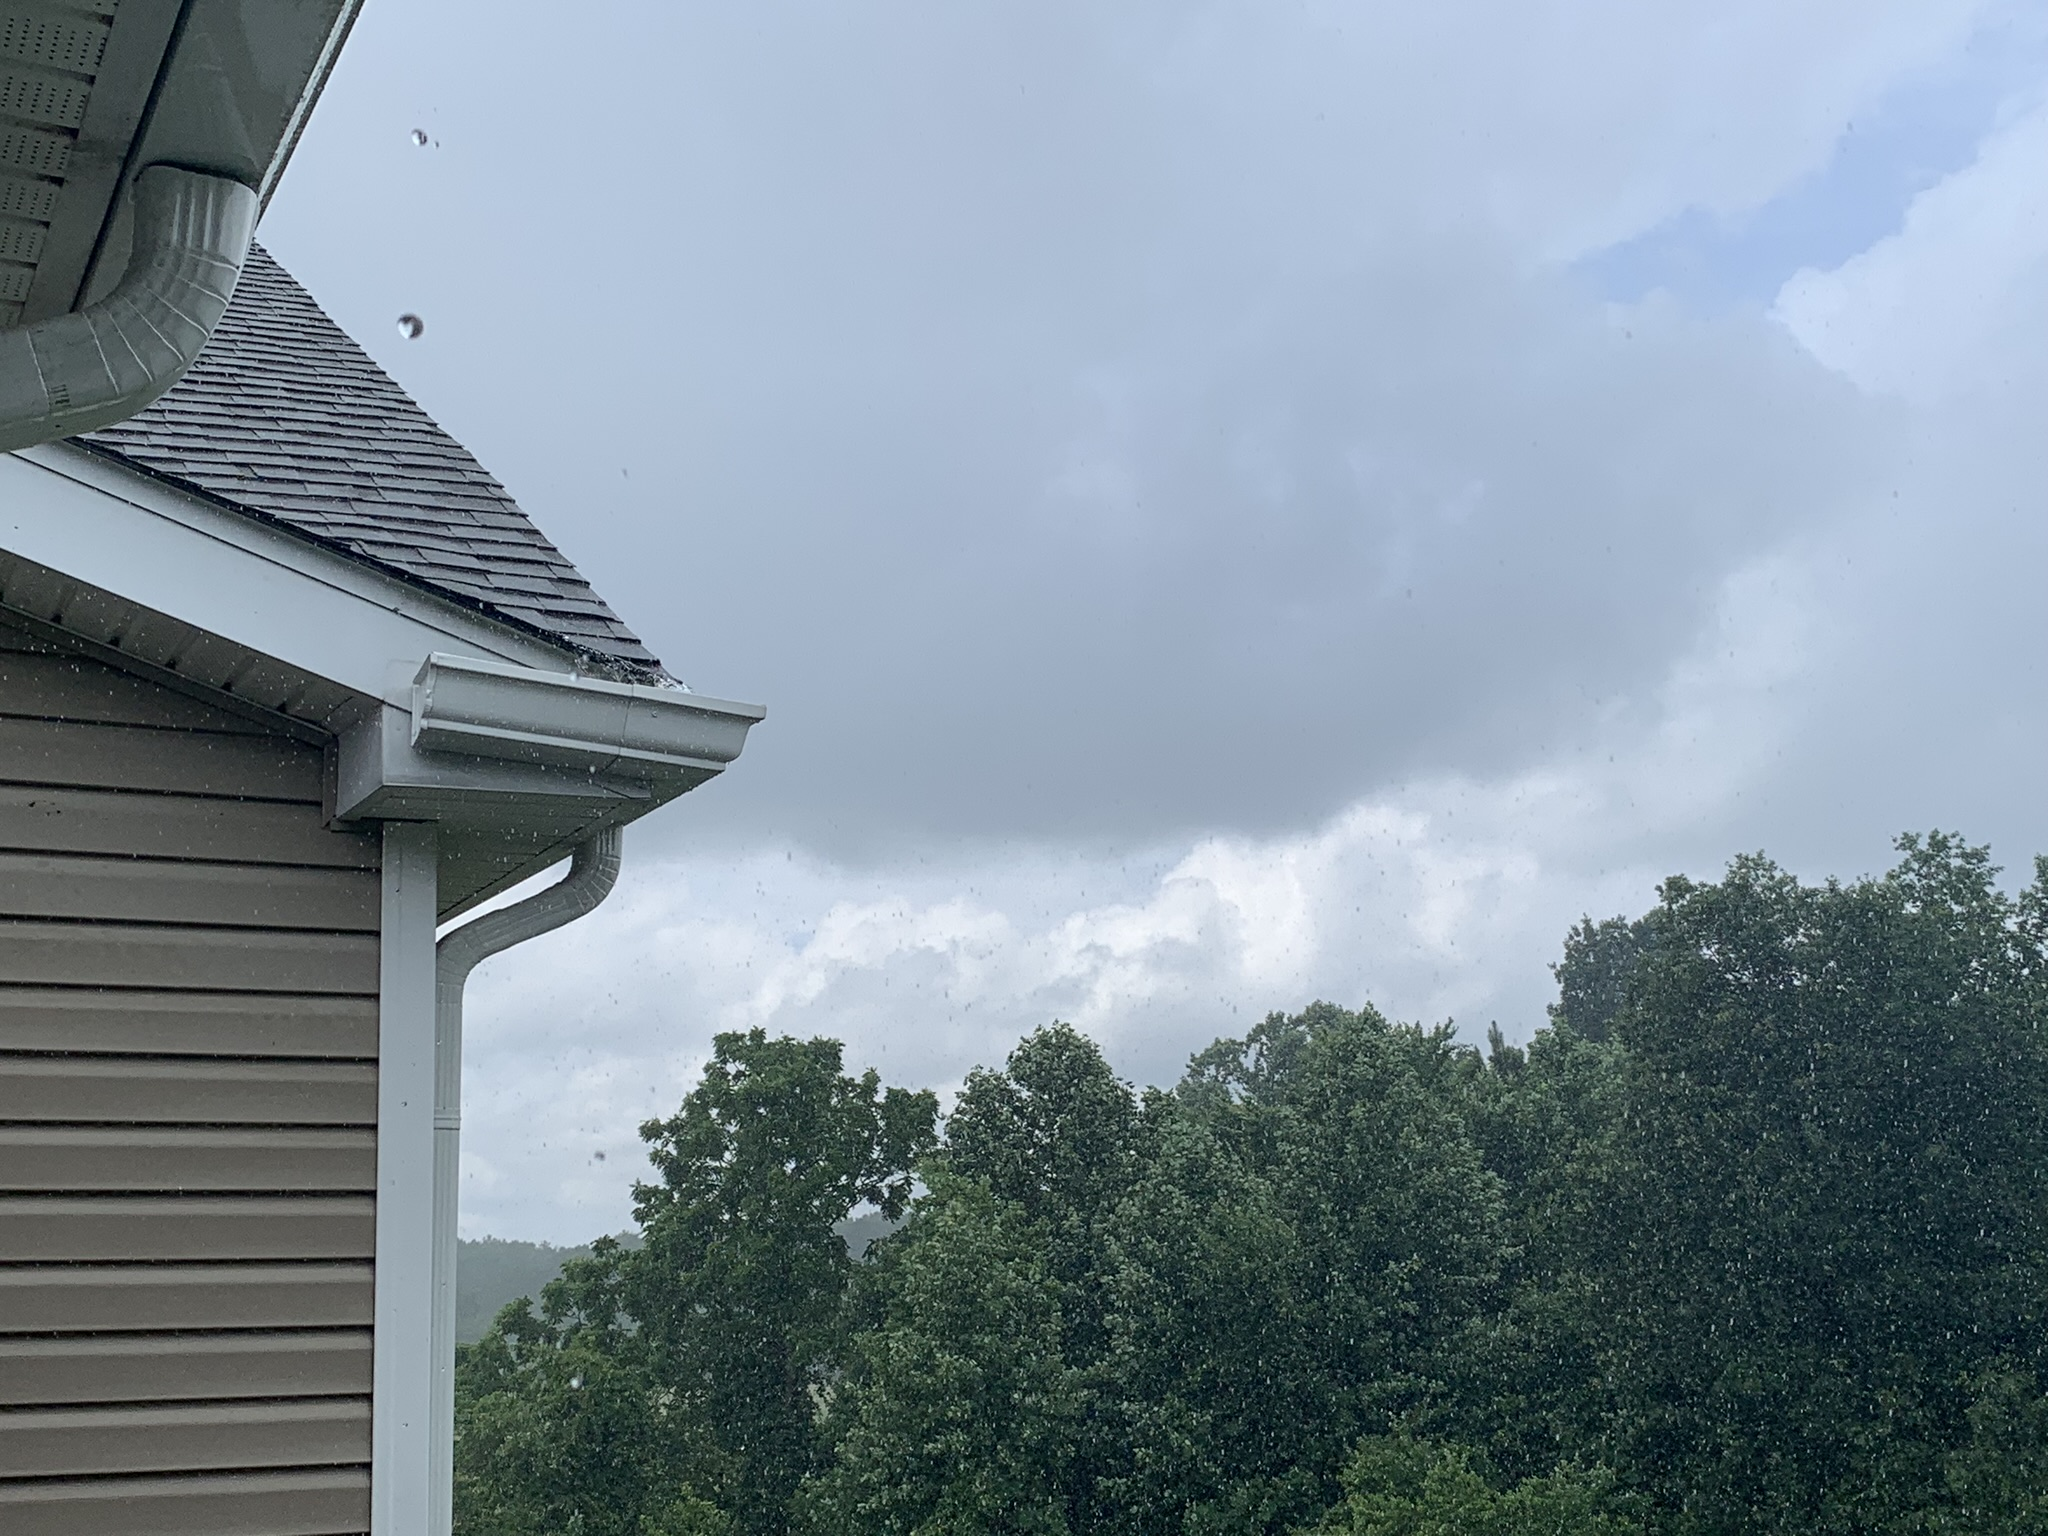 Sun and rain at the same time. Delmar, Maryland.